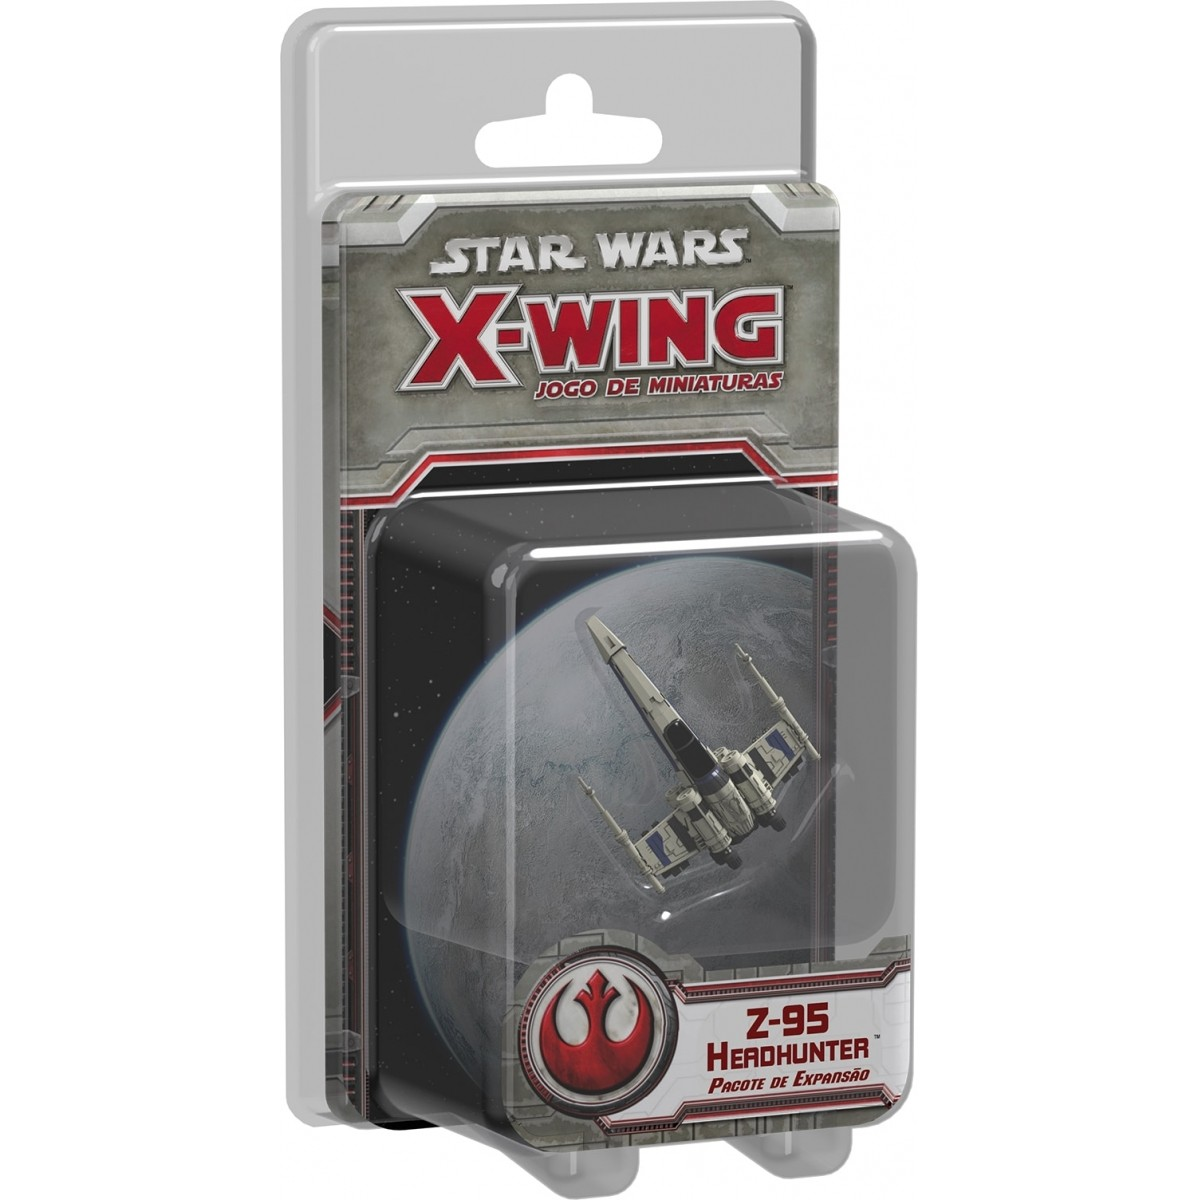 Star Wars X Wing Z 95 Headhunter Galapagos SWX016  - Place Games